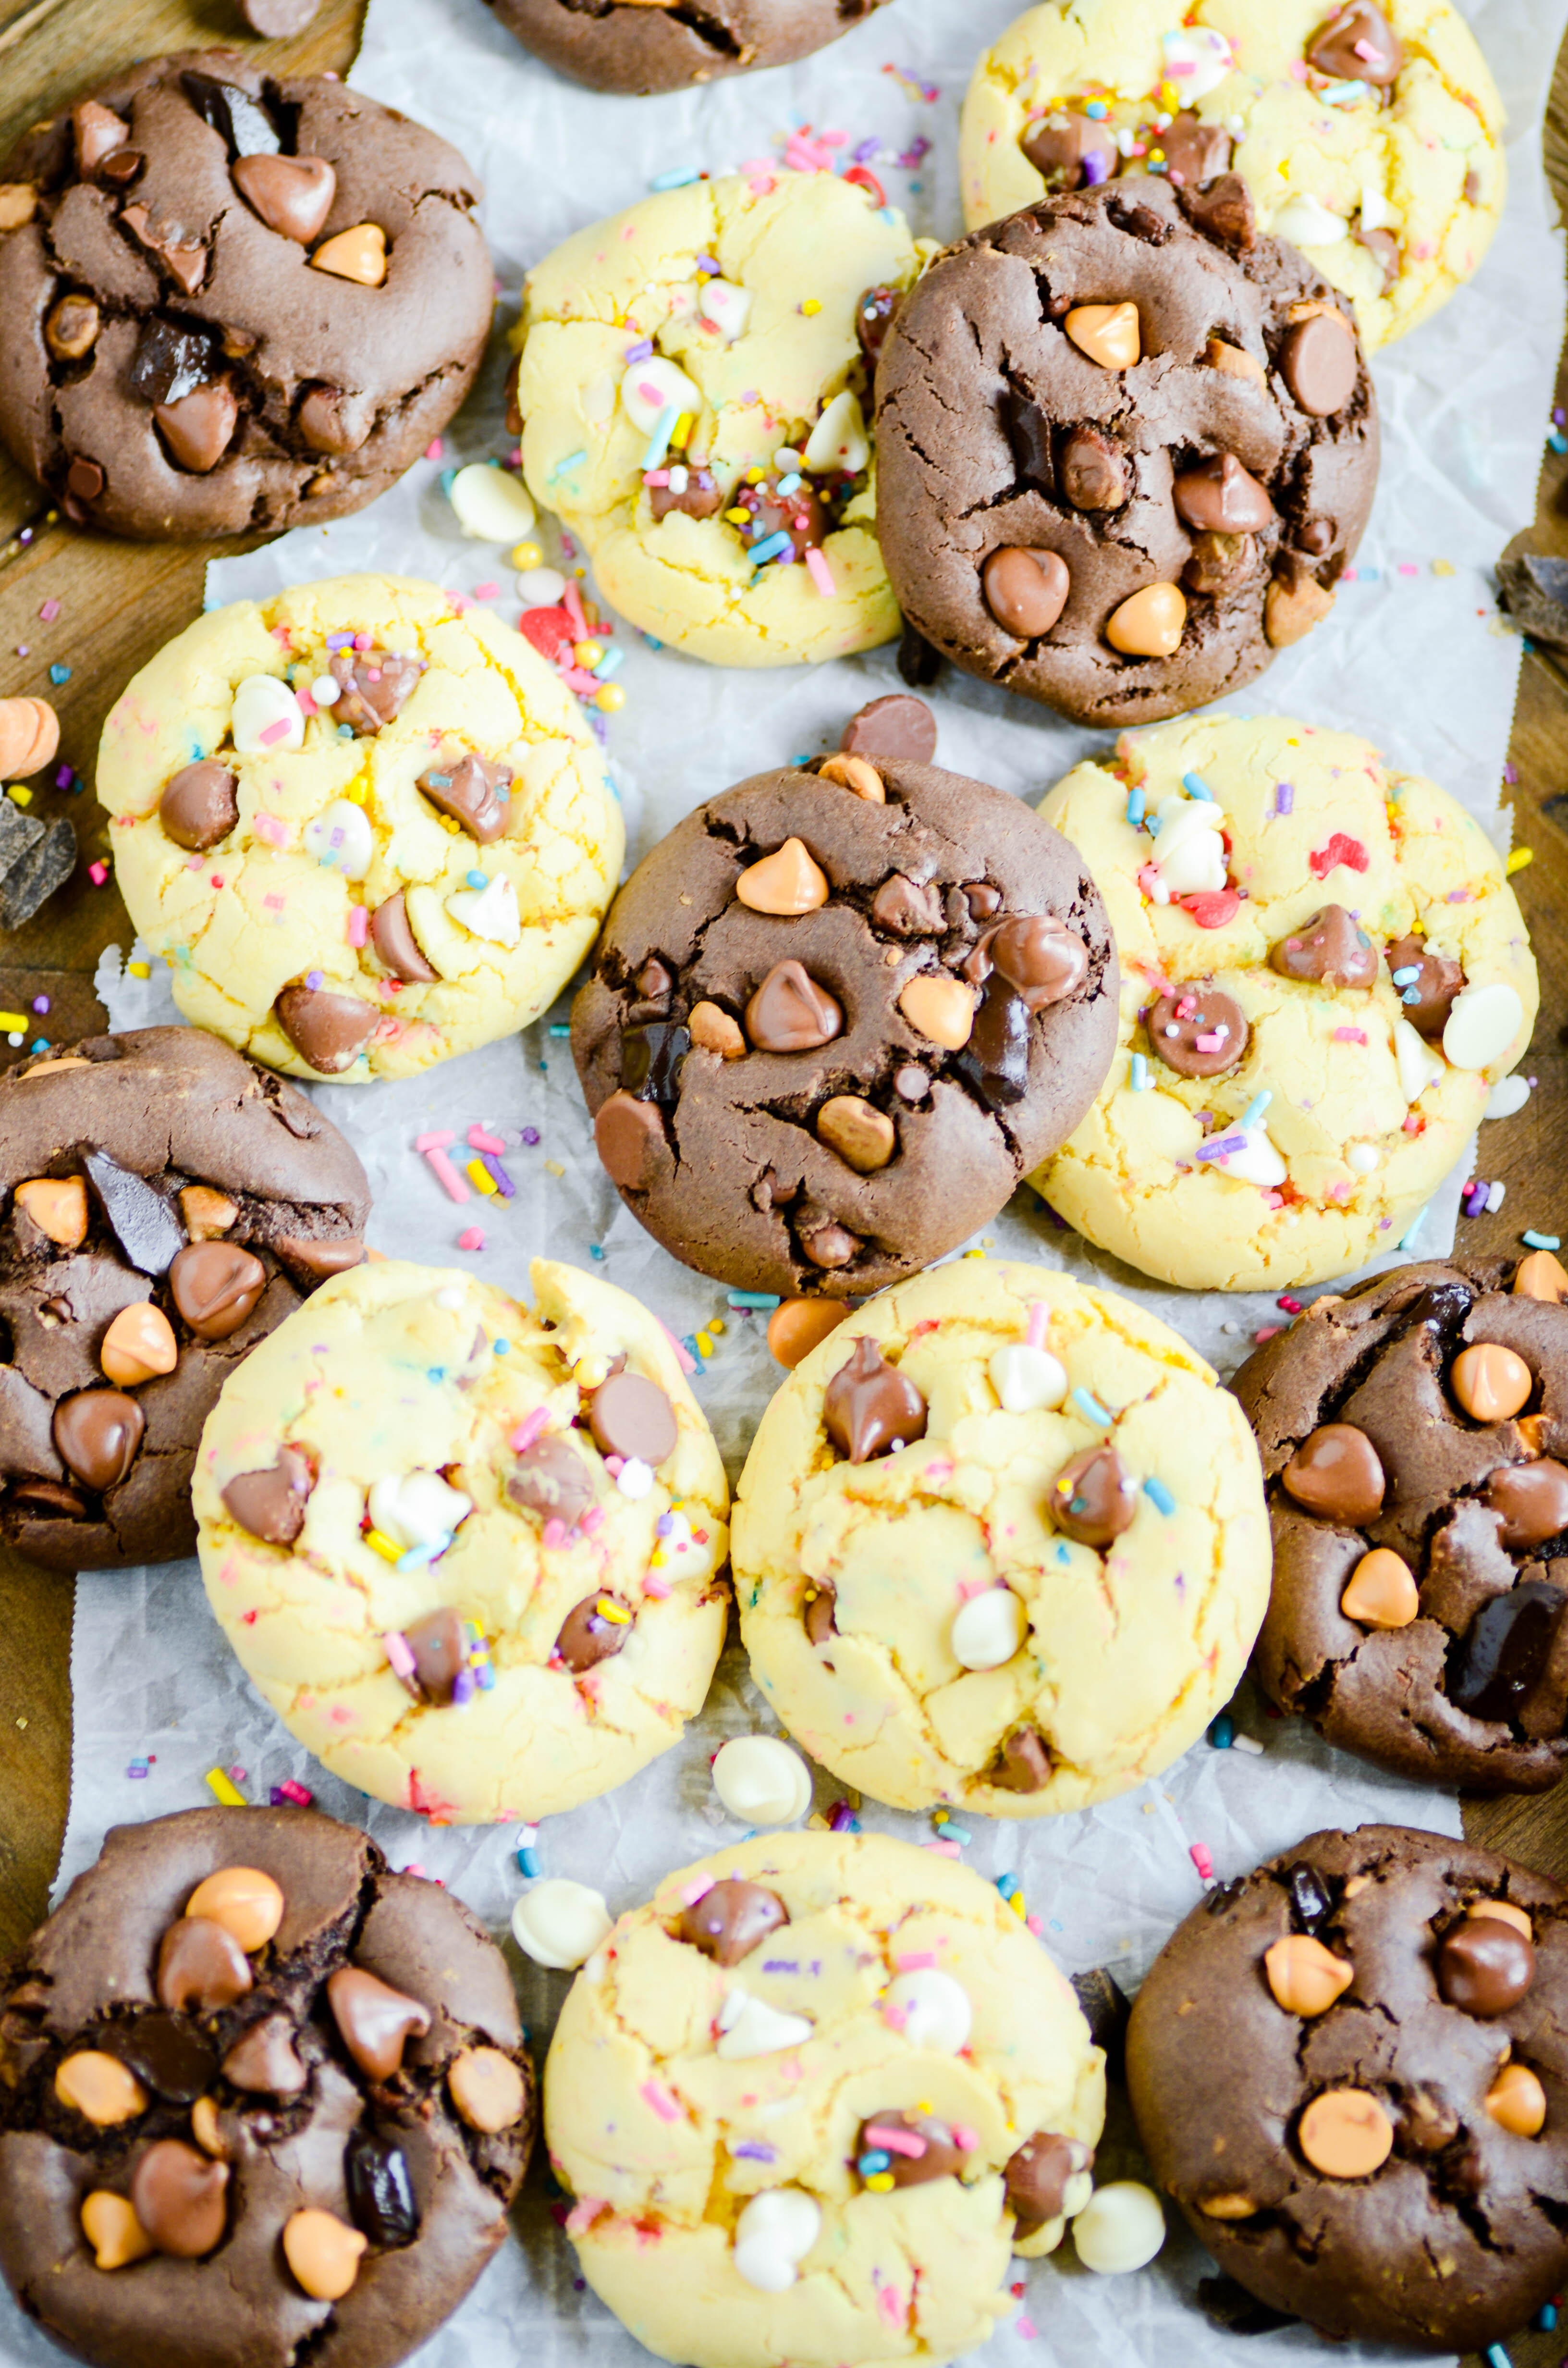 My favorite recipe for cake mix cookies. You can make so many different kinds of cookies with just one recipe!